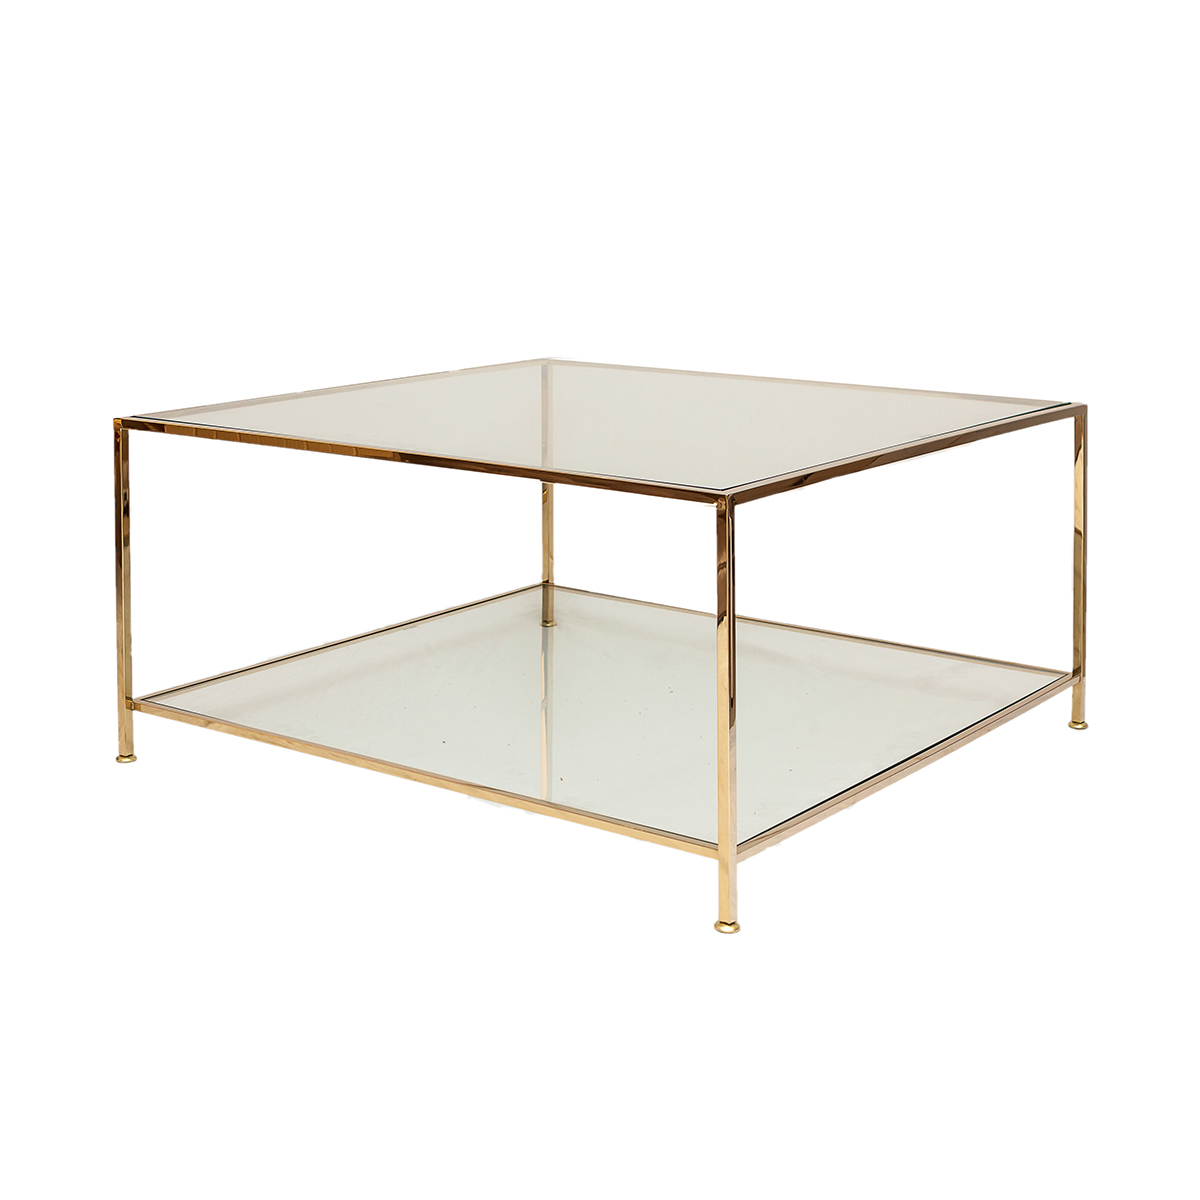 Big Square Table – Polerad Mässing